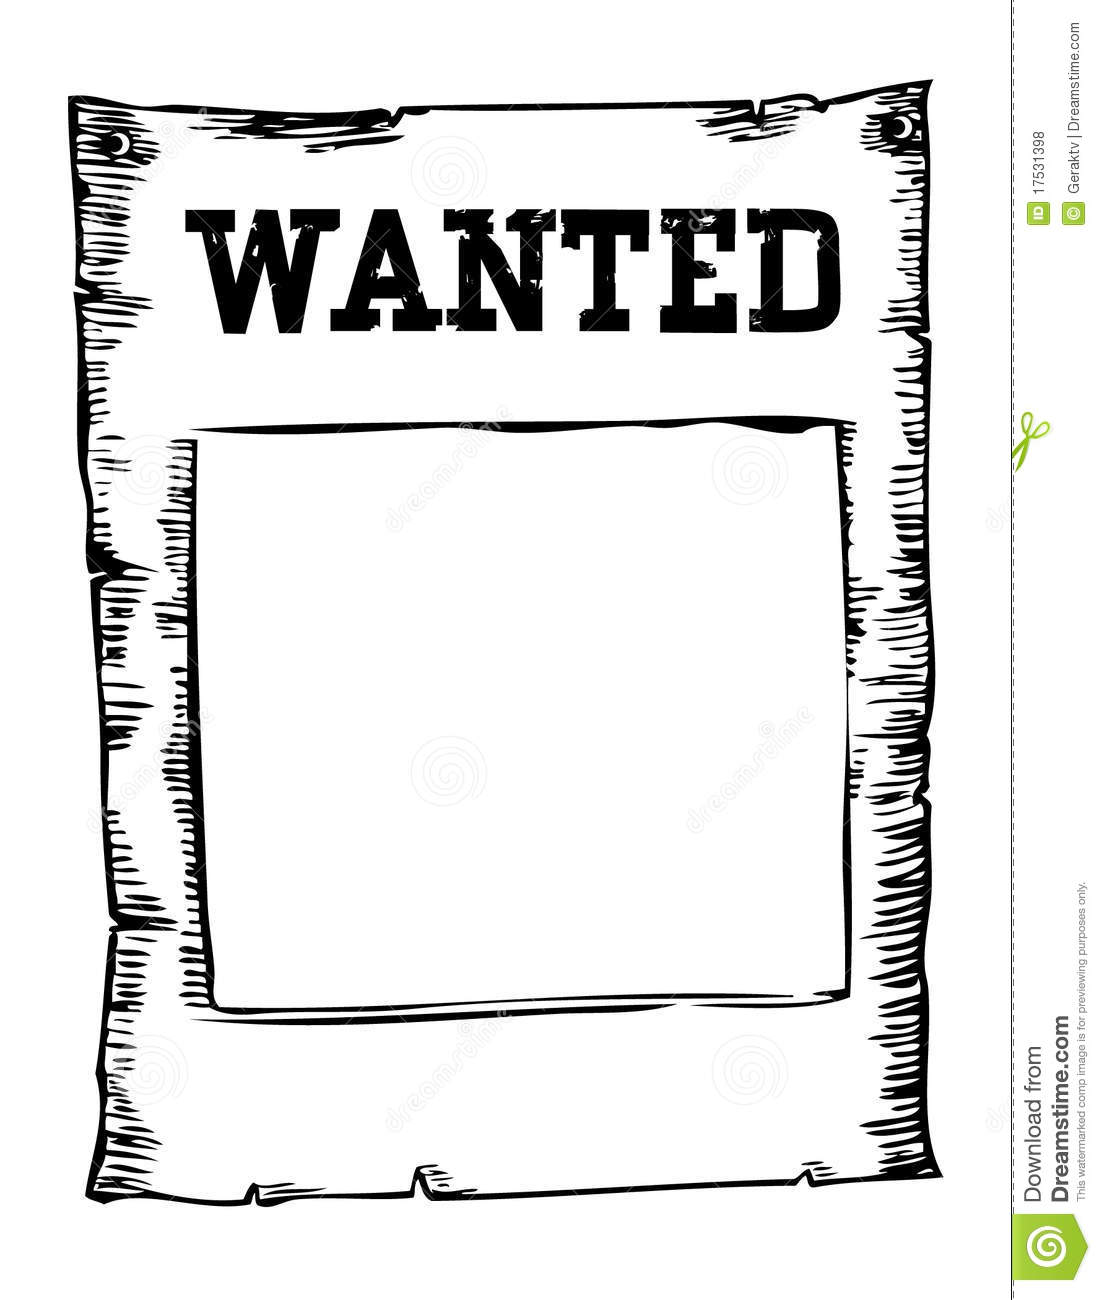 Wanted Poster Clip Art u2013 Clipart Free Download